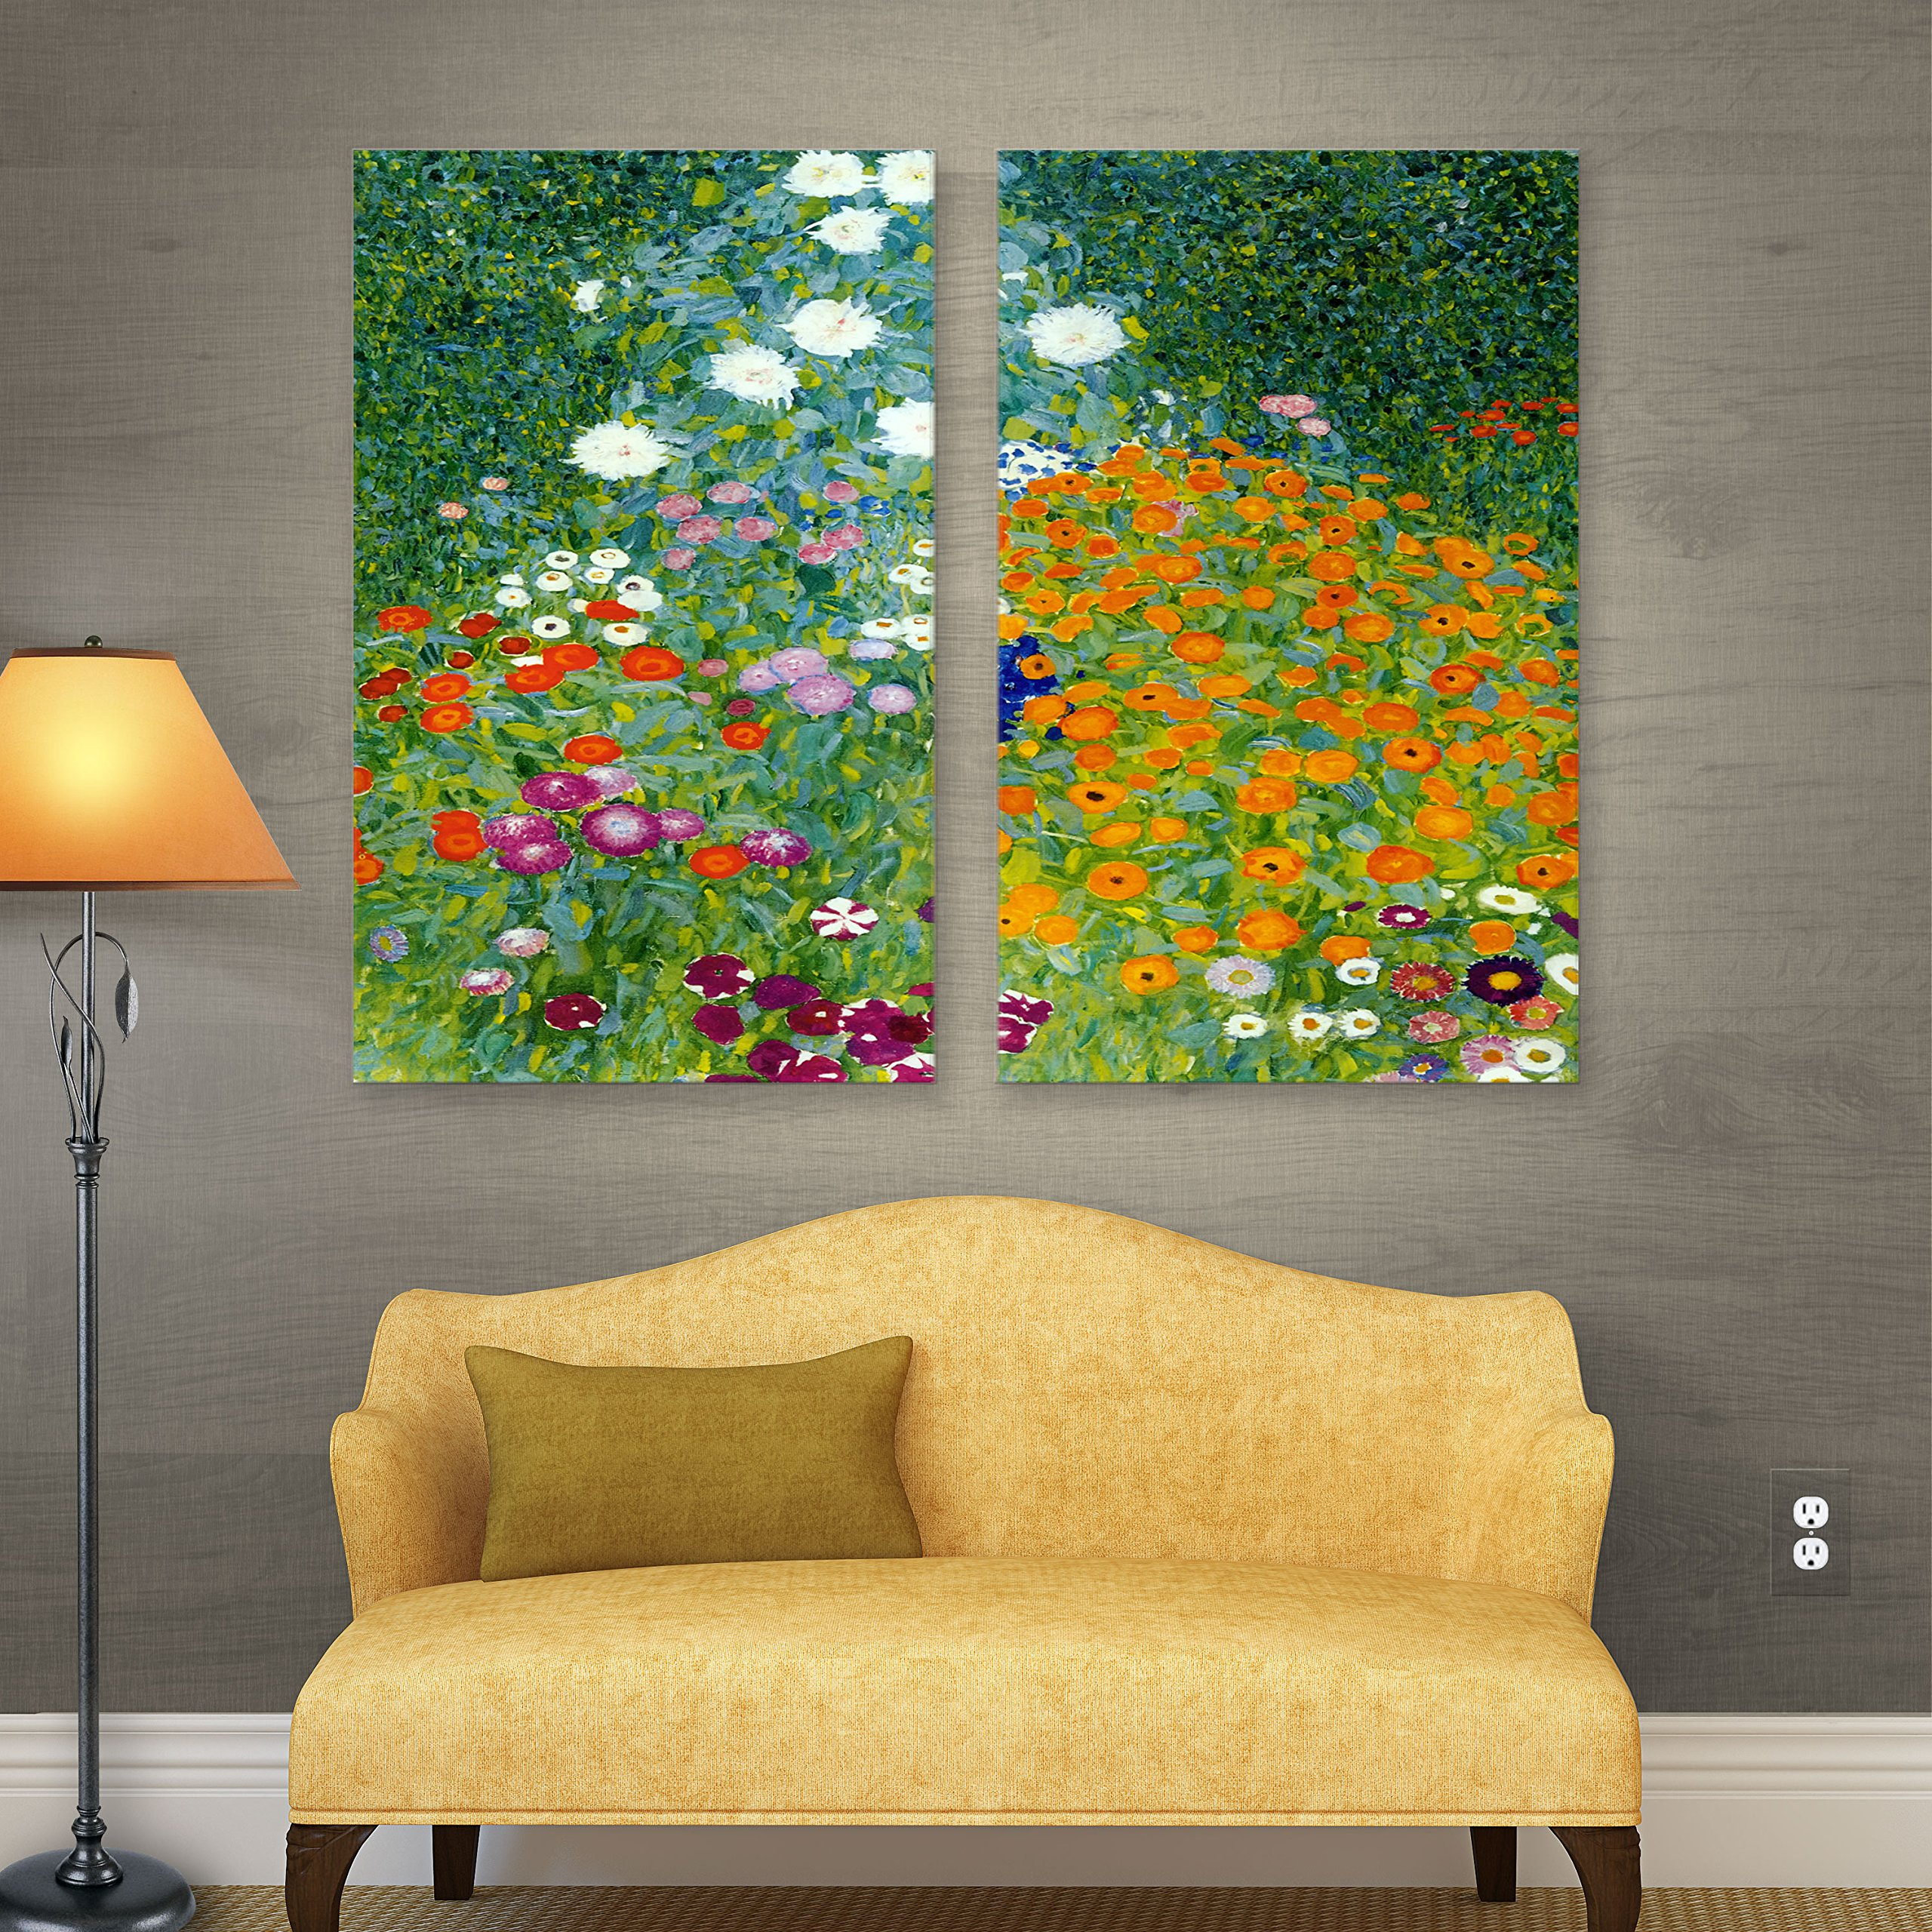 ArtWall Gustav Klimt 'Farm Garden' 2-Piece Gallery Wrapped Canvas Artwork, 32 by 48-Inch by Art Wall